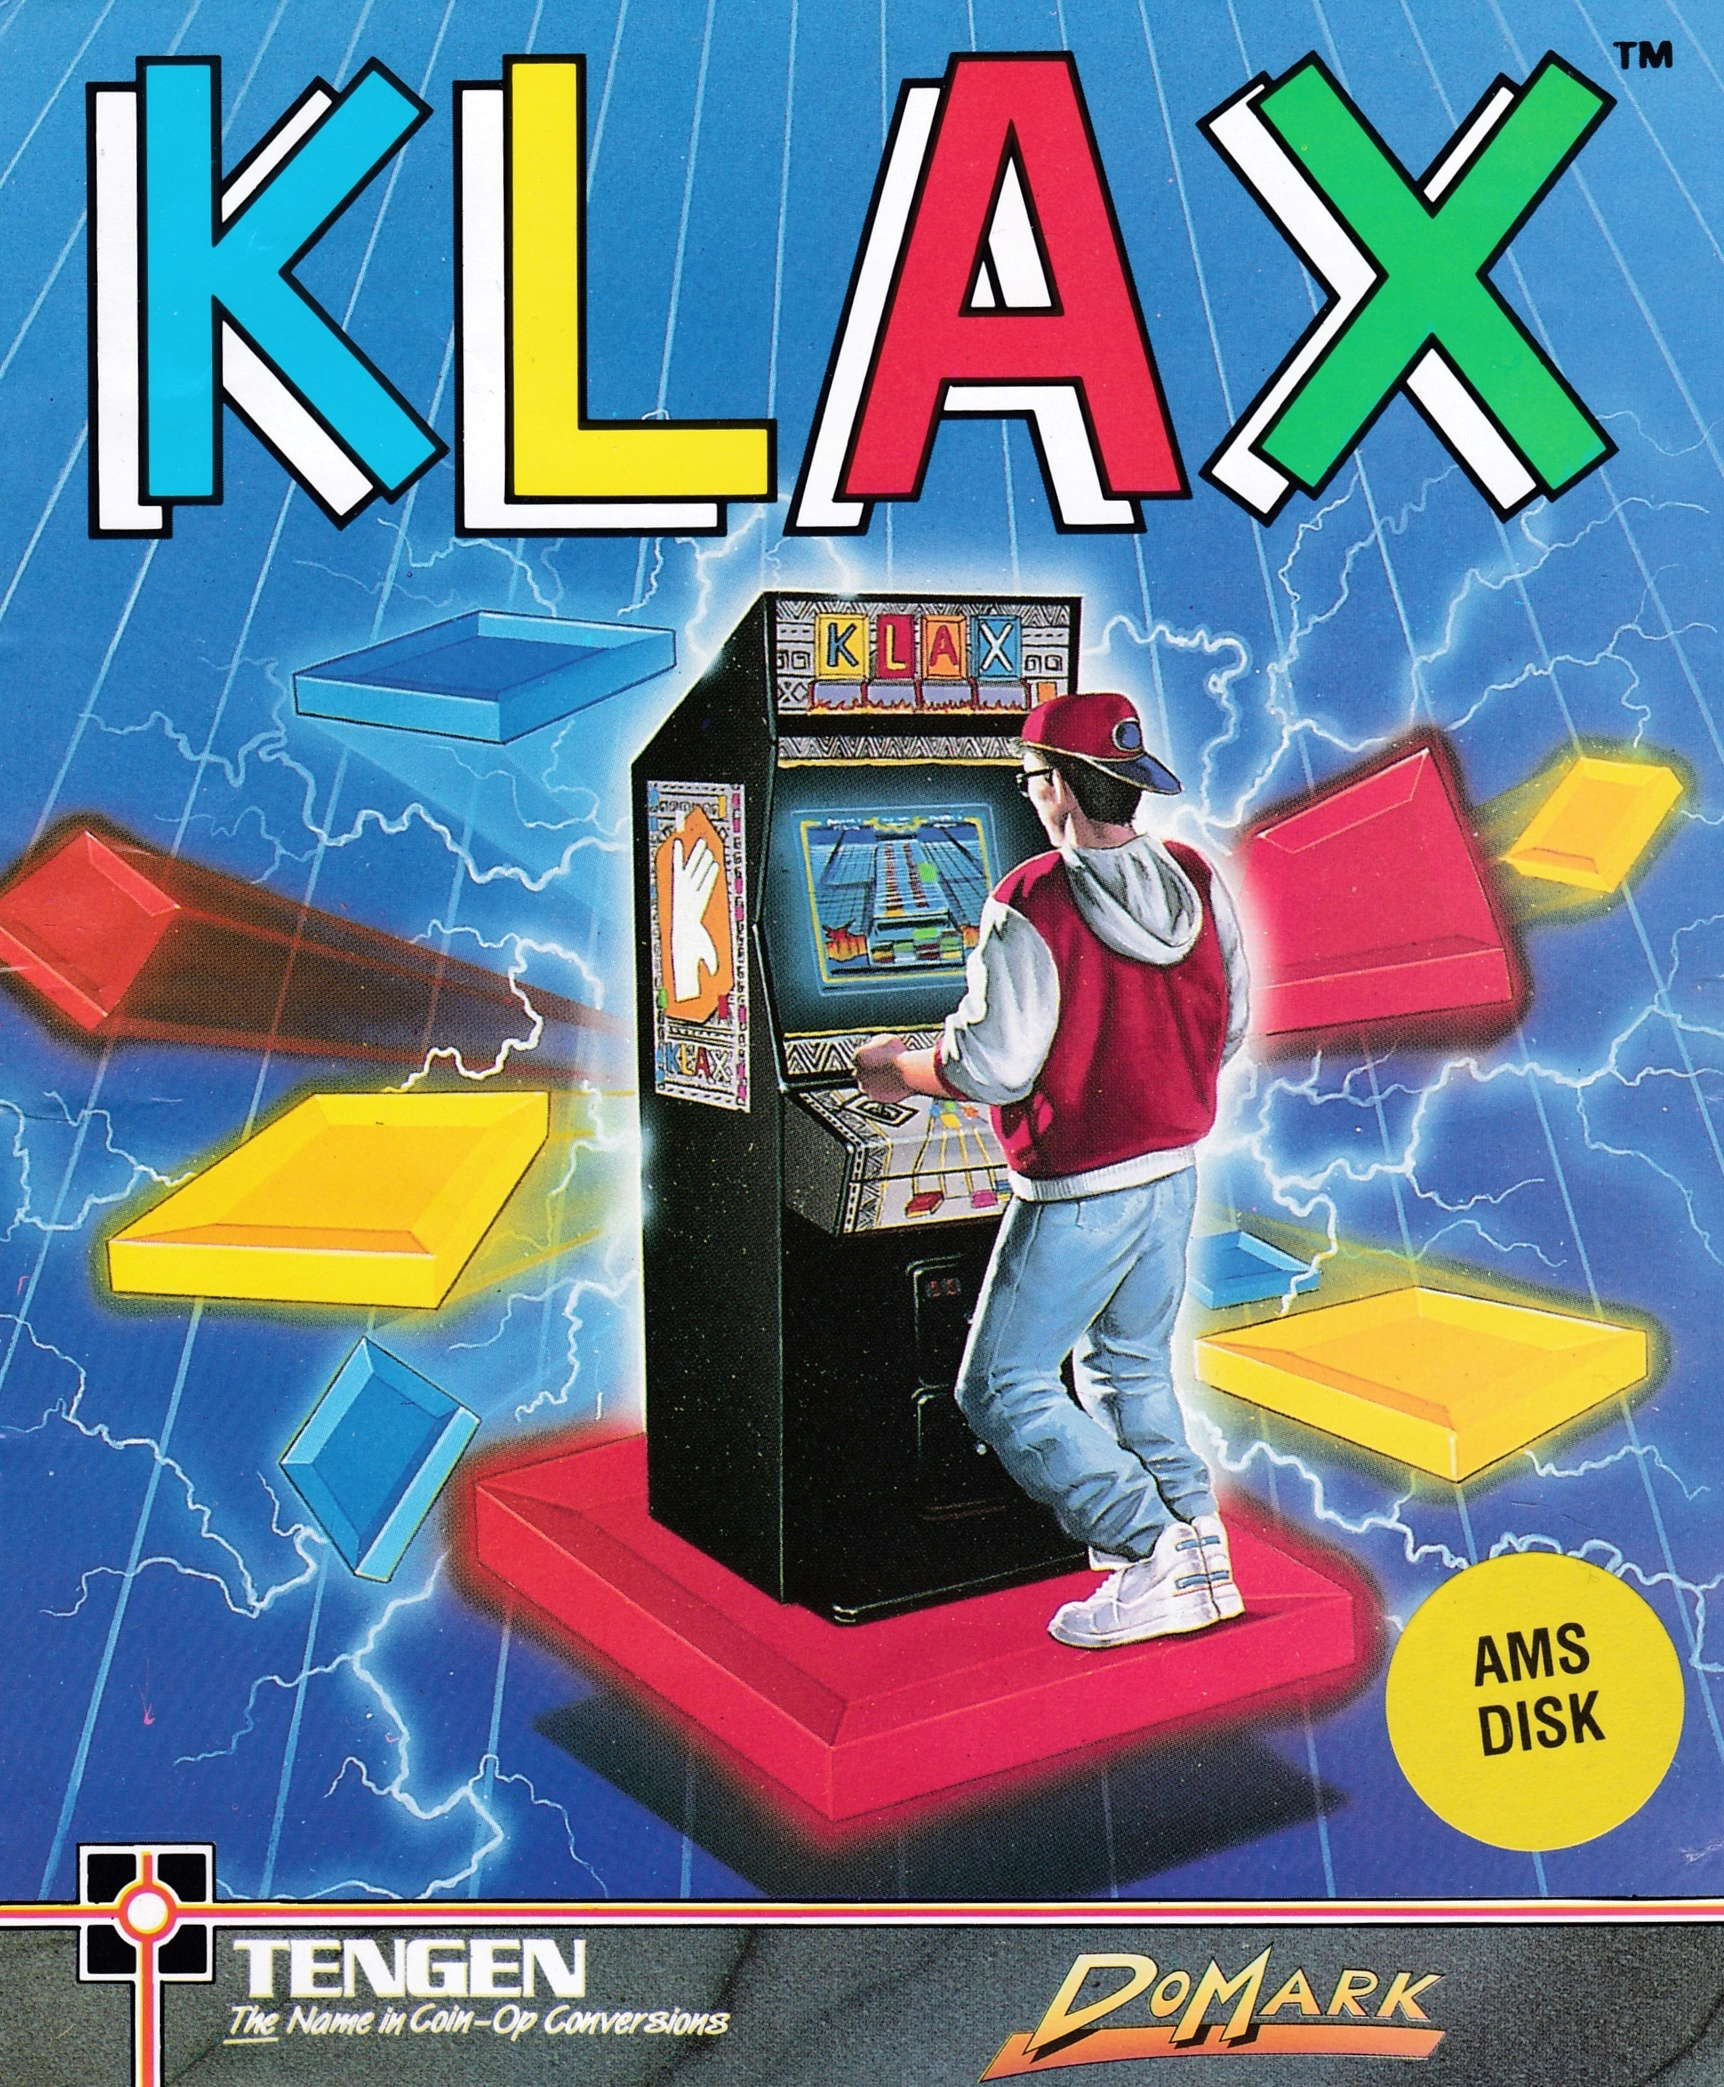 screenshot of the Amstrad CPC game Klax by GameBase CPC